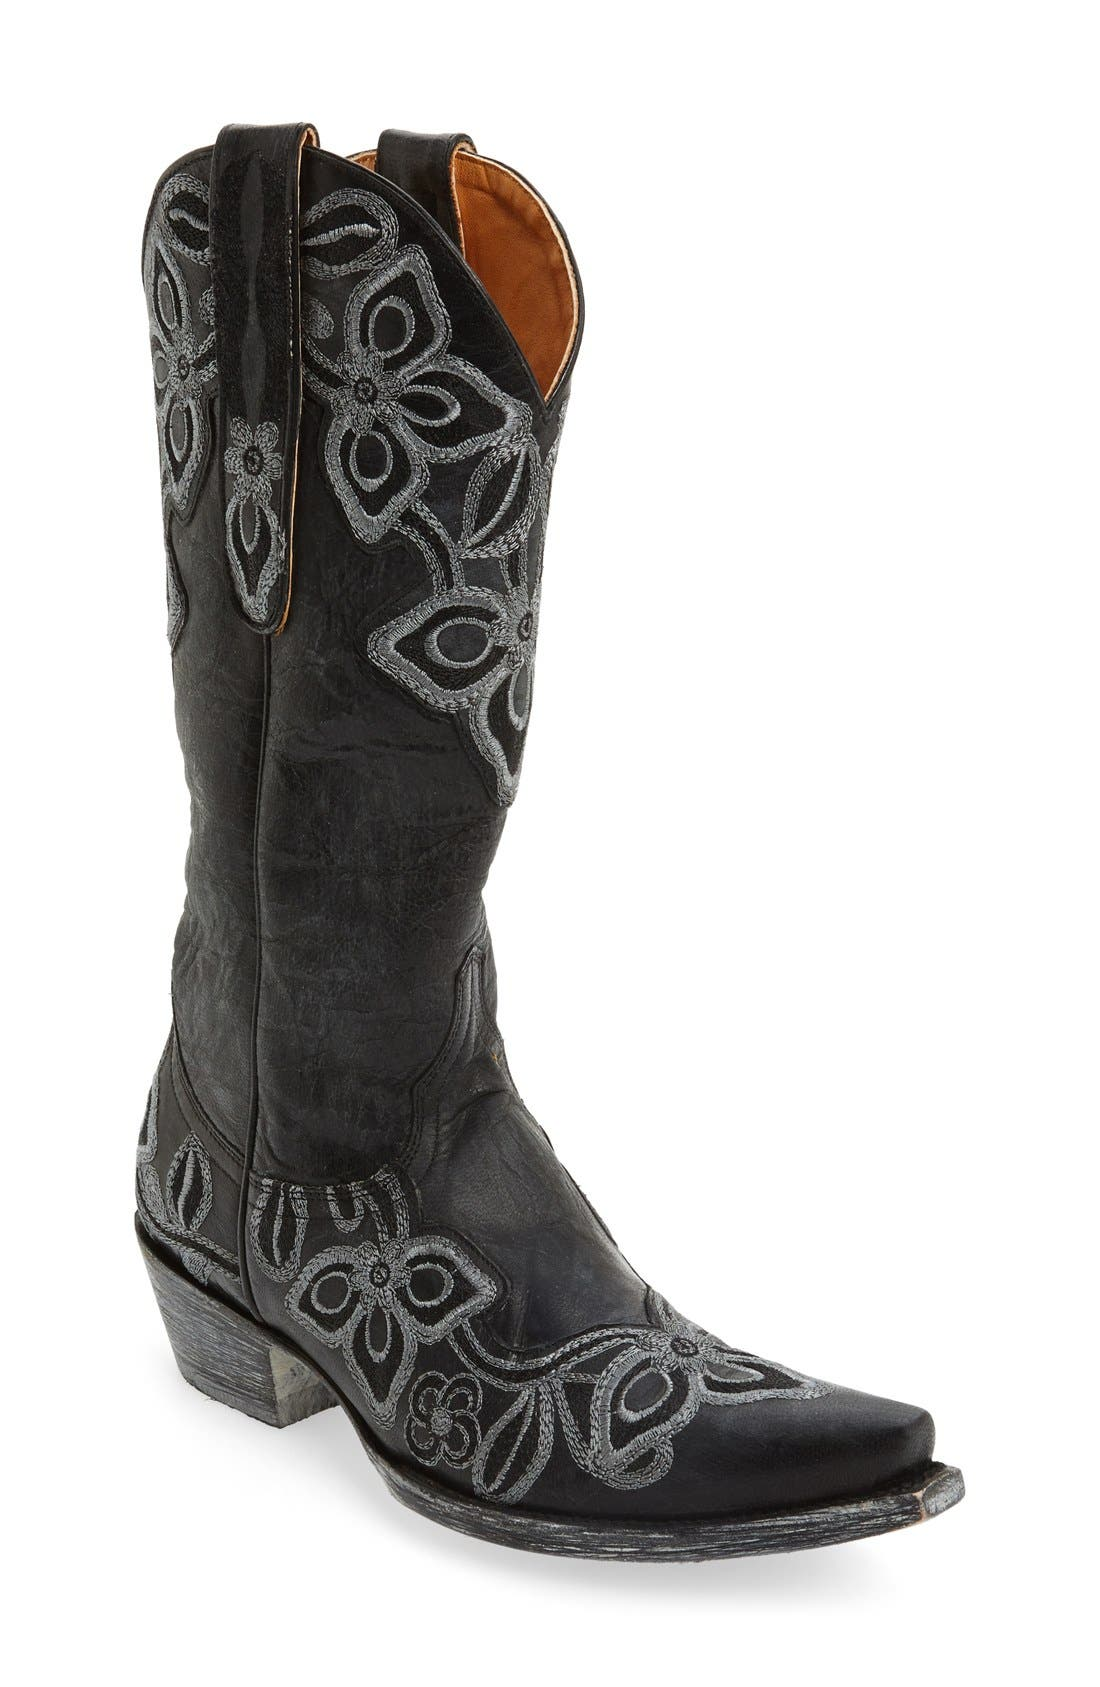 Alternate Image 1 Selected - Old Gringo 'Marrione' Western Boot (Women)